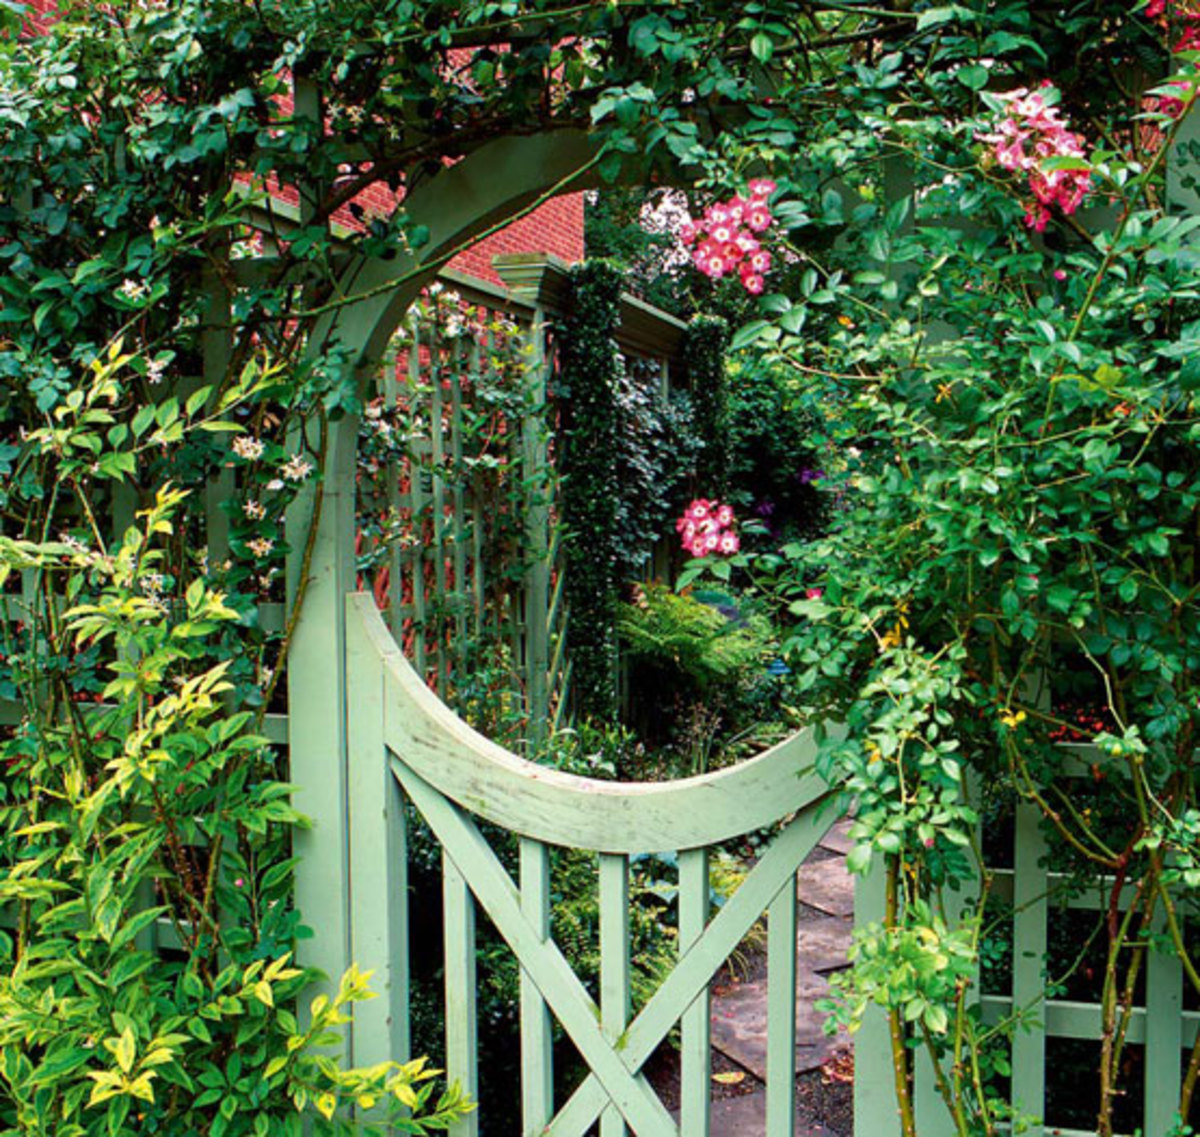 moon gate, Arts & Crafts landscape design